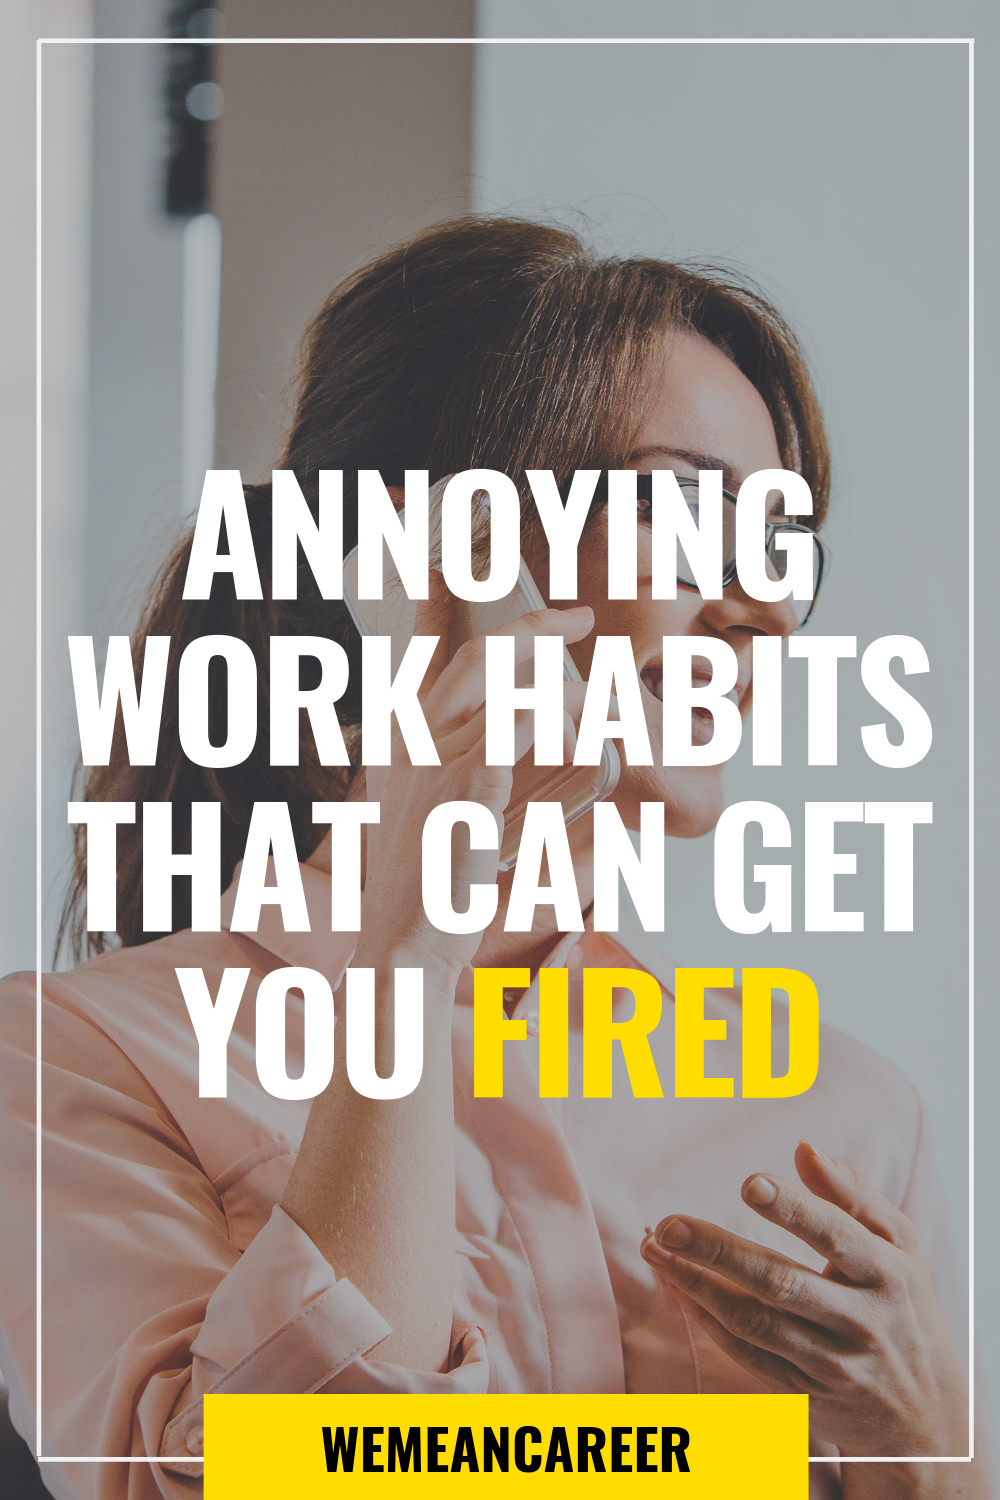 eea6b0f2ad3139a6c5bd8e4ba80c18d5 - How To Ask Your Boss If You Are Getting Fired